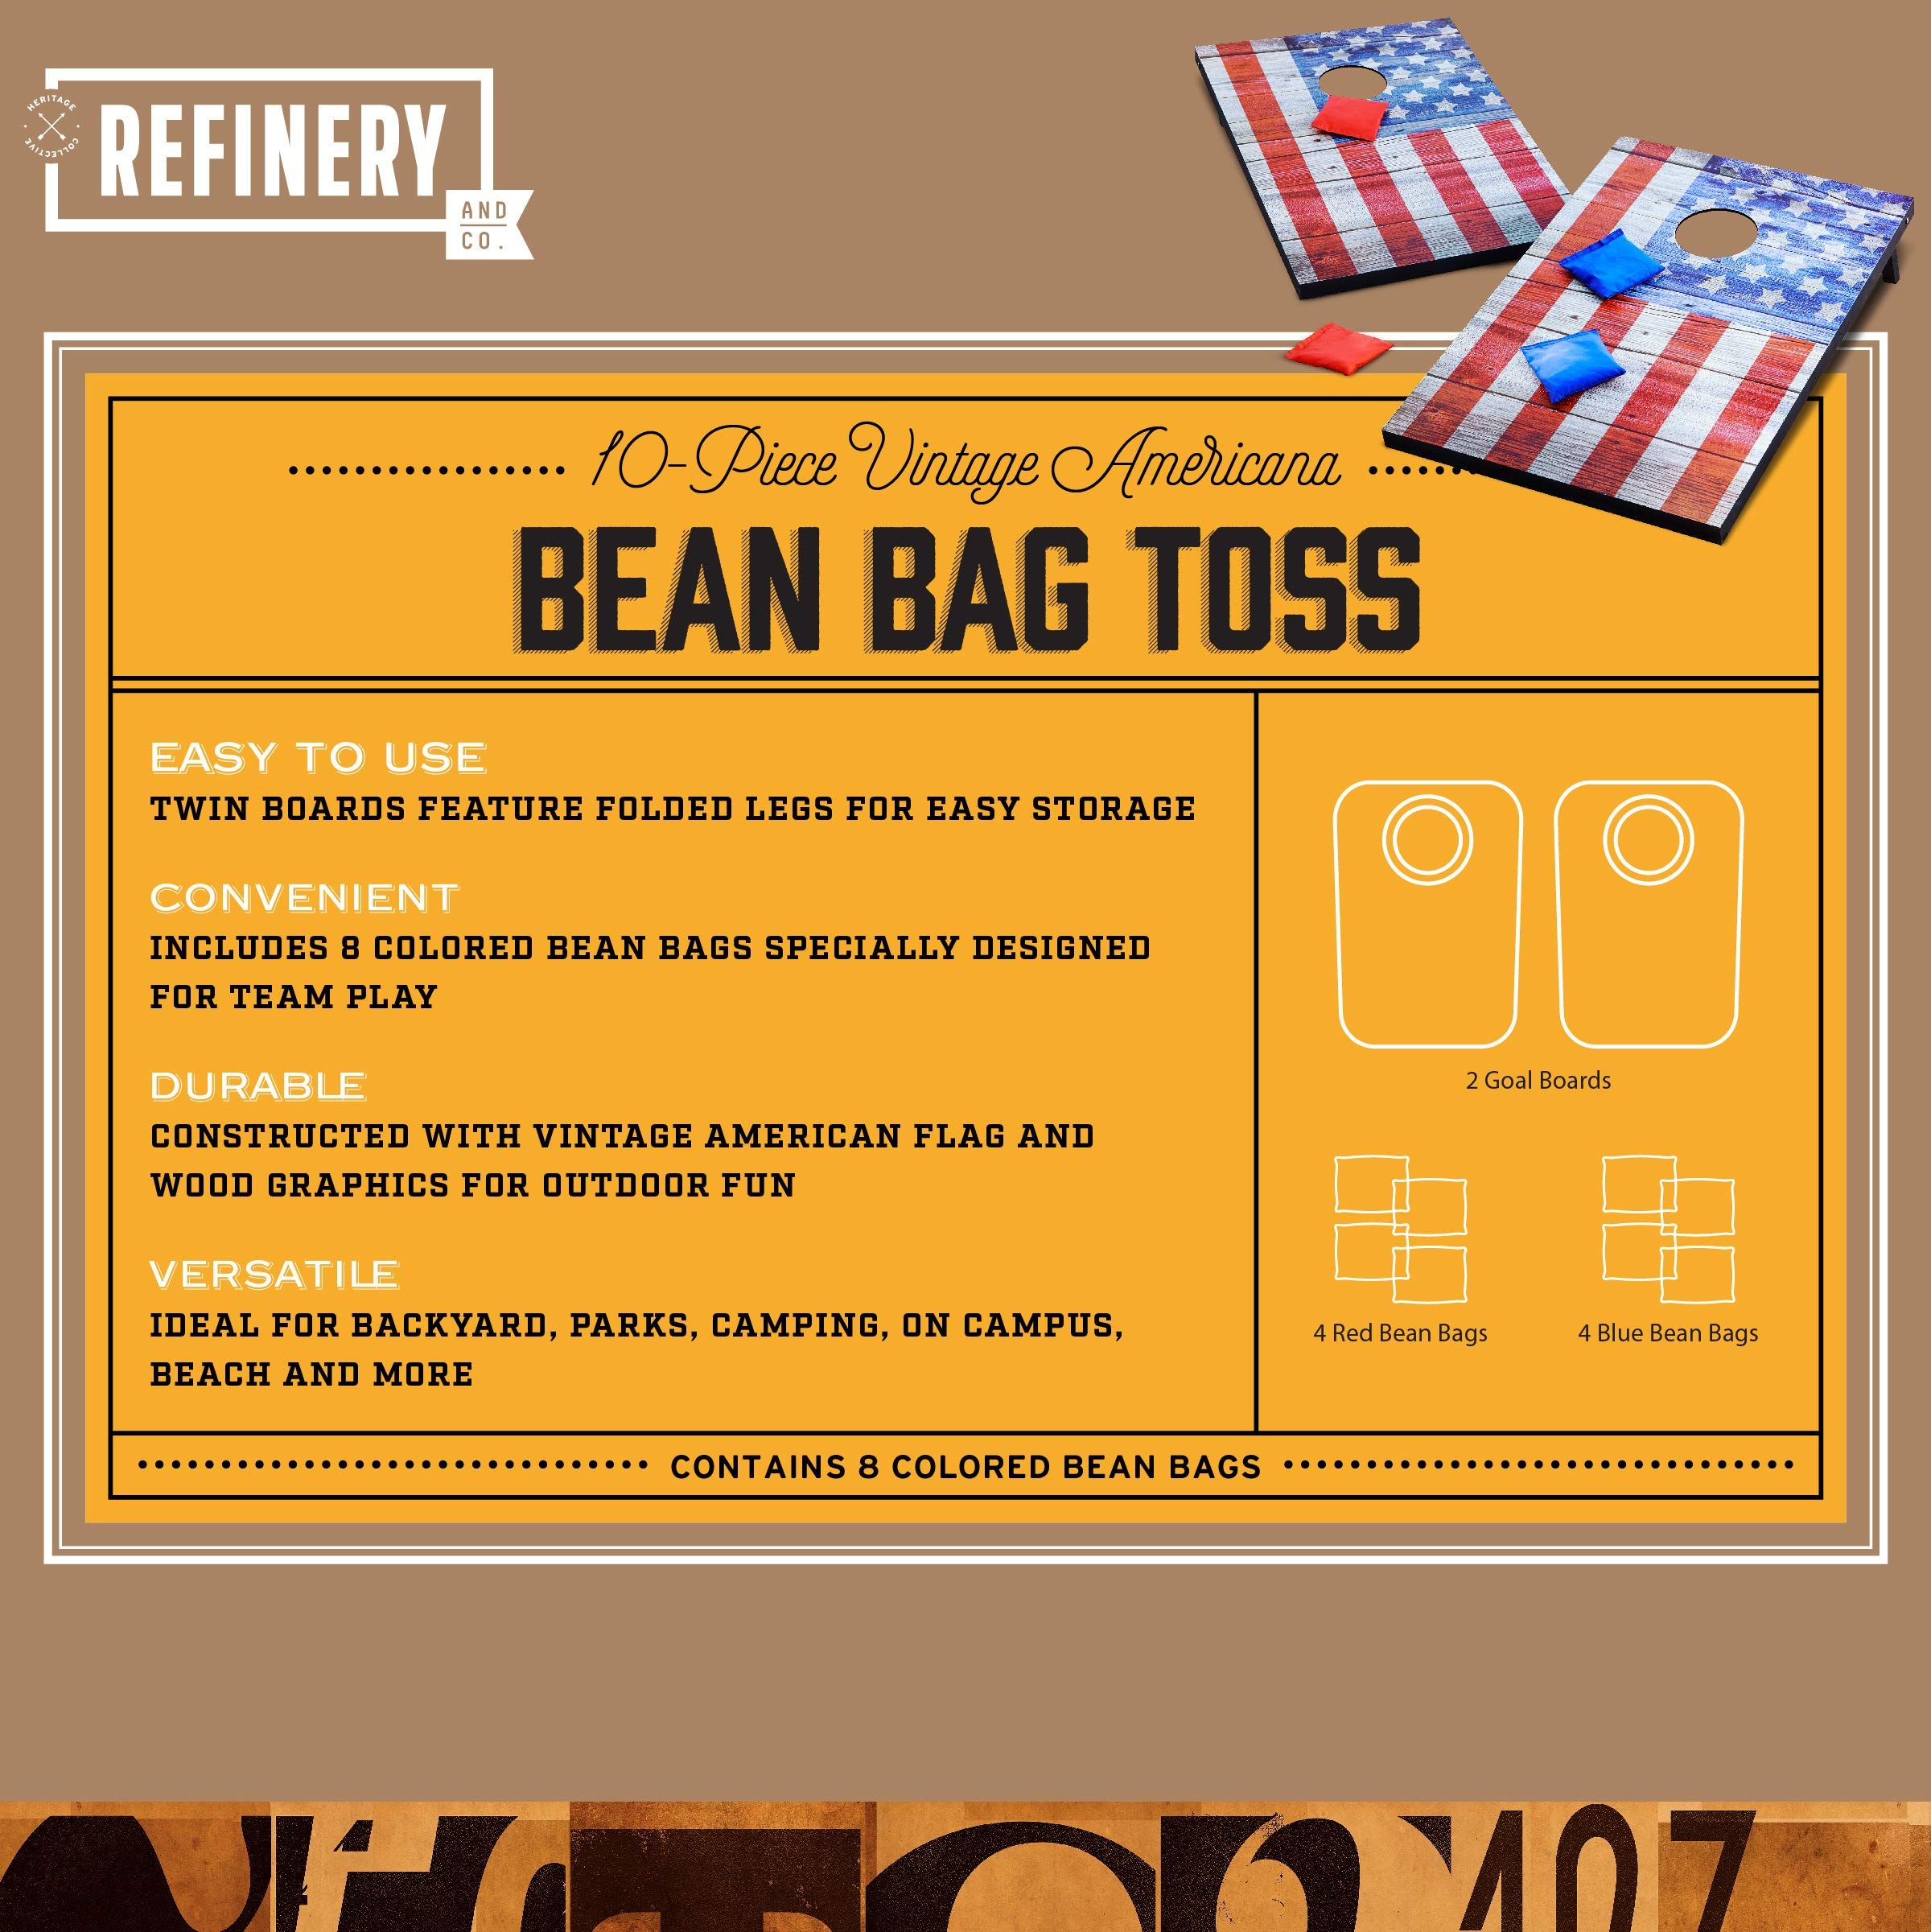 Refinery Vintage Americana Deluxe Bean Bag Toss Set, Complete Cornhole Game, Best Picnic & BBQ Target Sport, 2 Folding Targets, 8 Premium Bean Bags in 2 Colors for Team Play, Easy Storage, Family Fun by Refinery (Image #3)